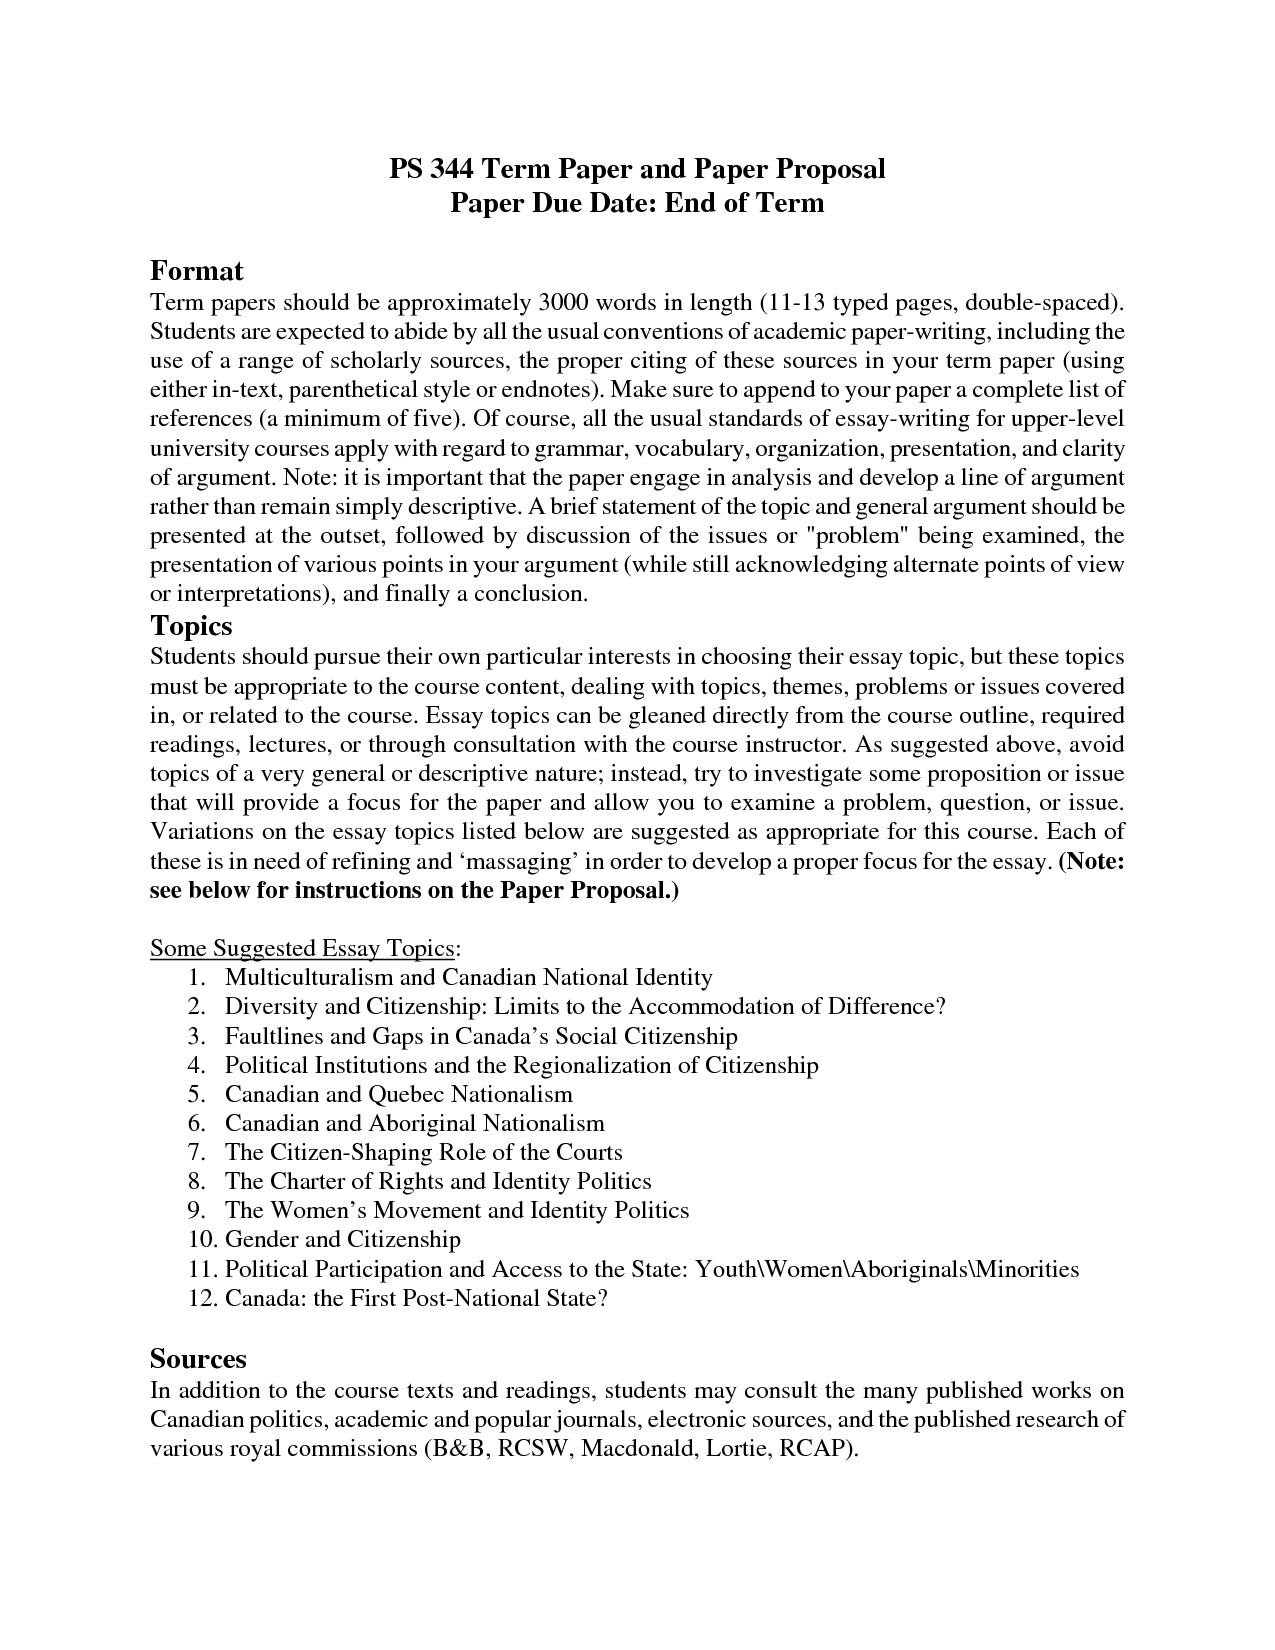 term paper proposal 1 sample research paper proposal krista feichtinger great books asian classics – prof fenkl final project proposal shamanism: an.